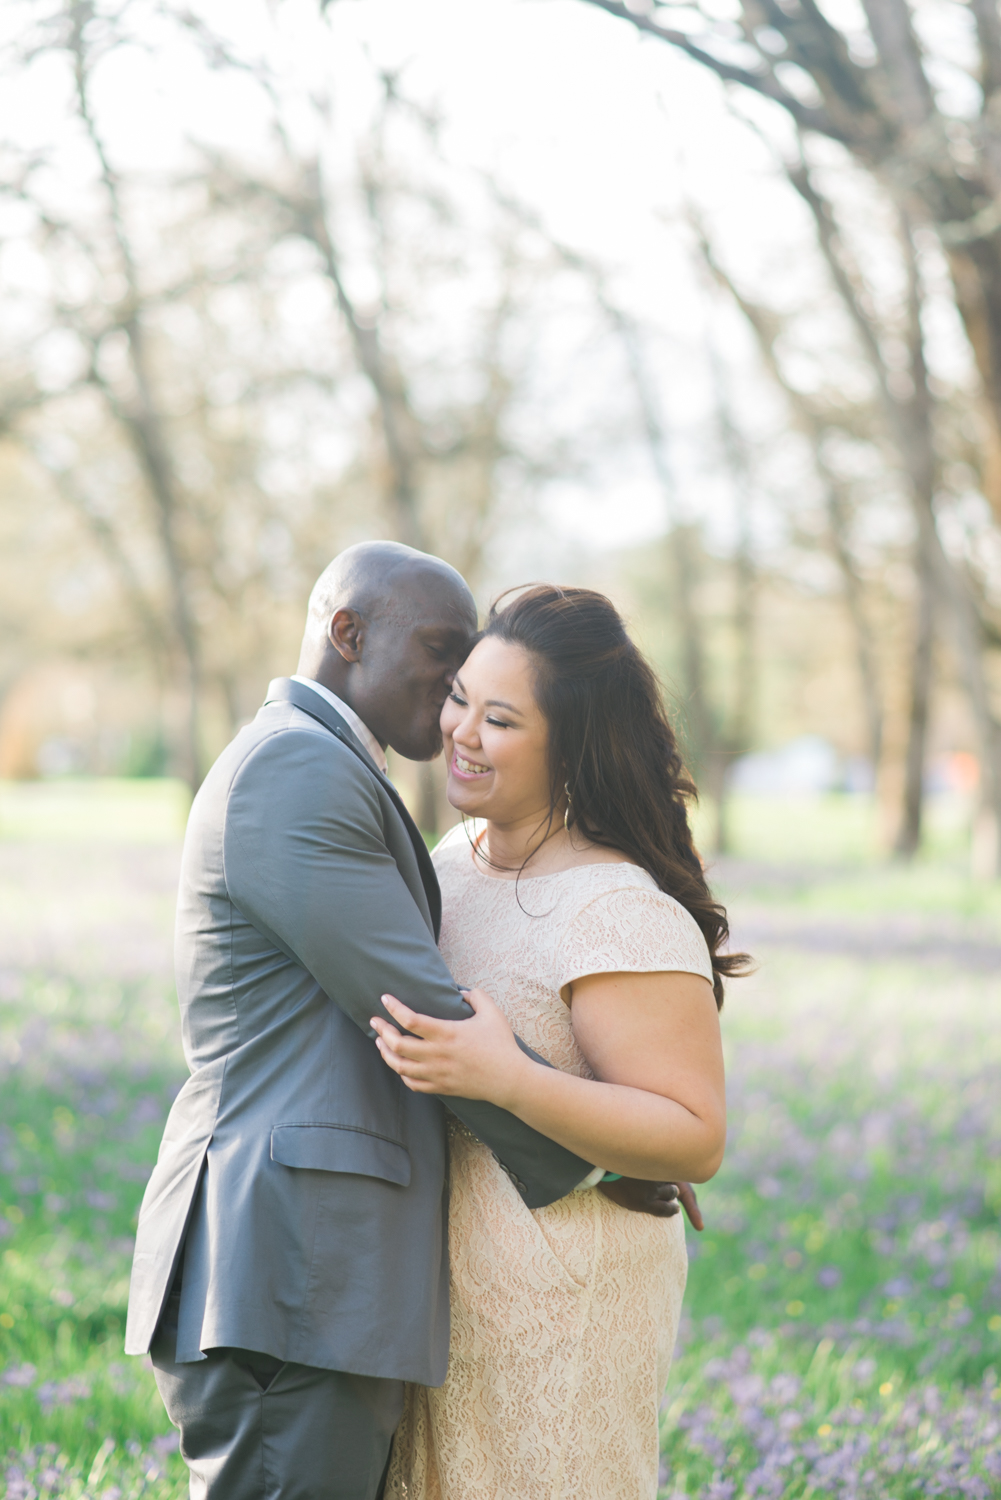 romantic-salem-engagement-photos-bush-park-shelley-marie-photo-3